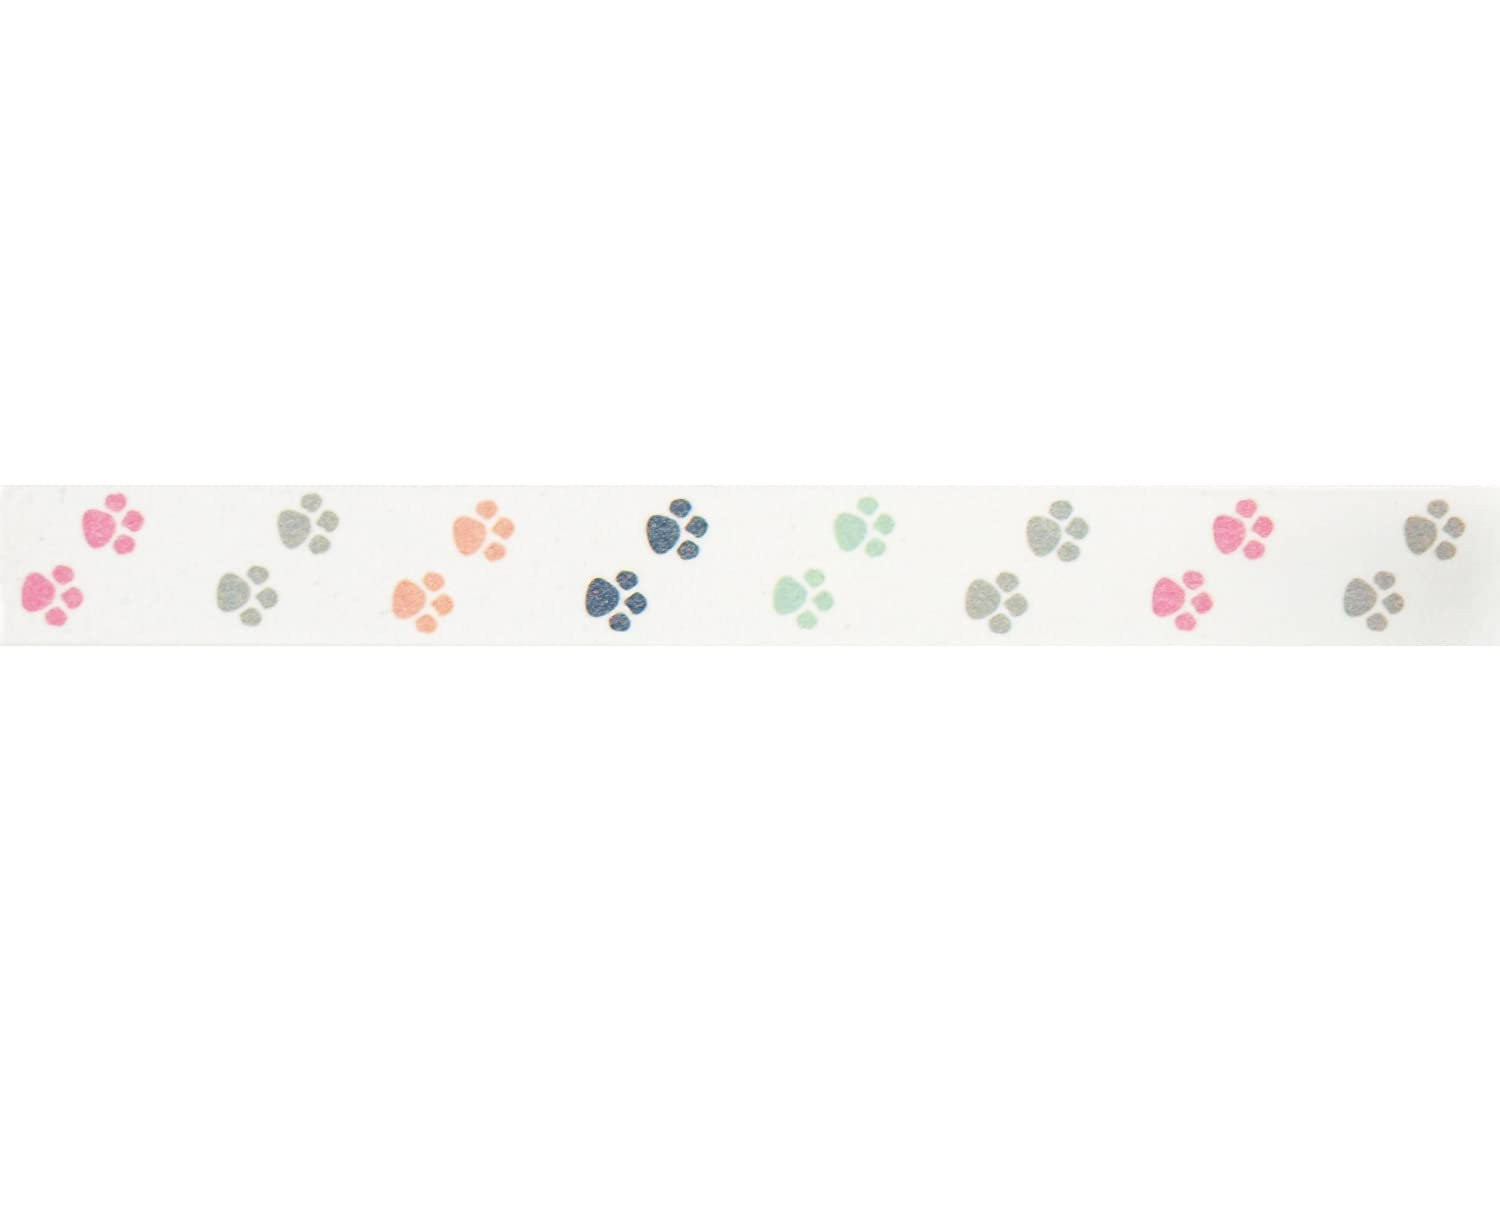 Puppy Paws Washi Tape | 1 Roll - 9/16 inches Wide x 10.95 Yards Long | Decorative Craft Tape